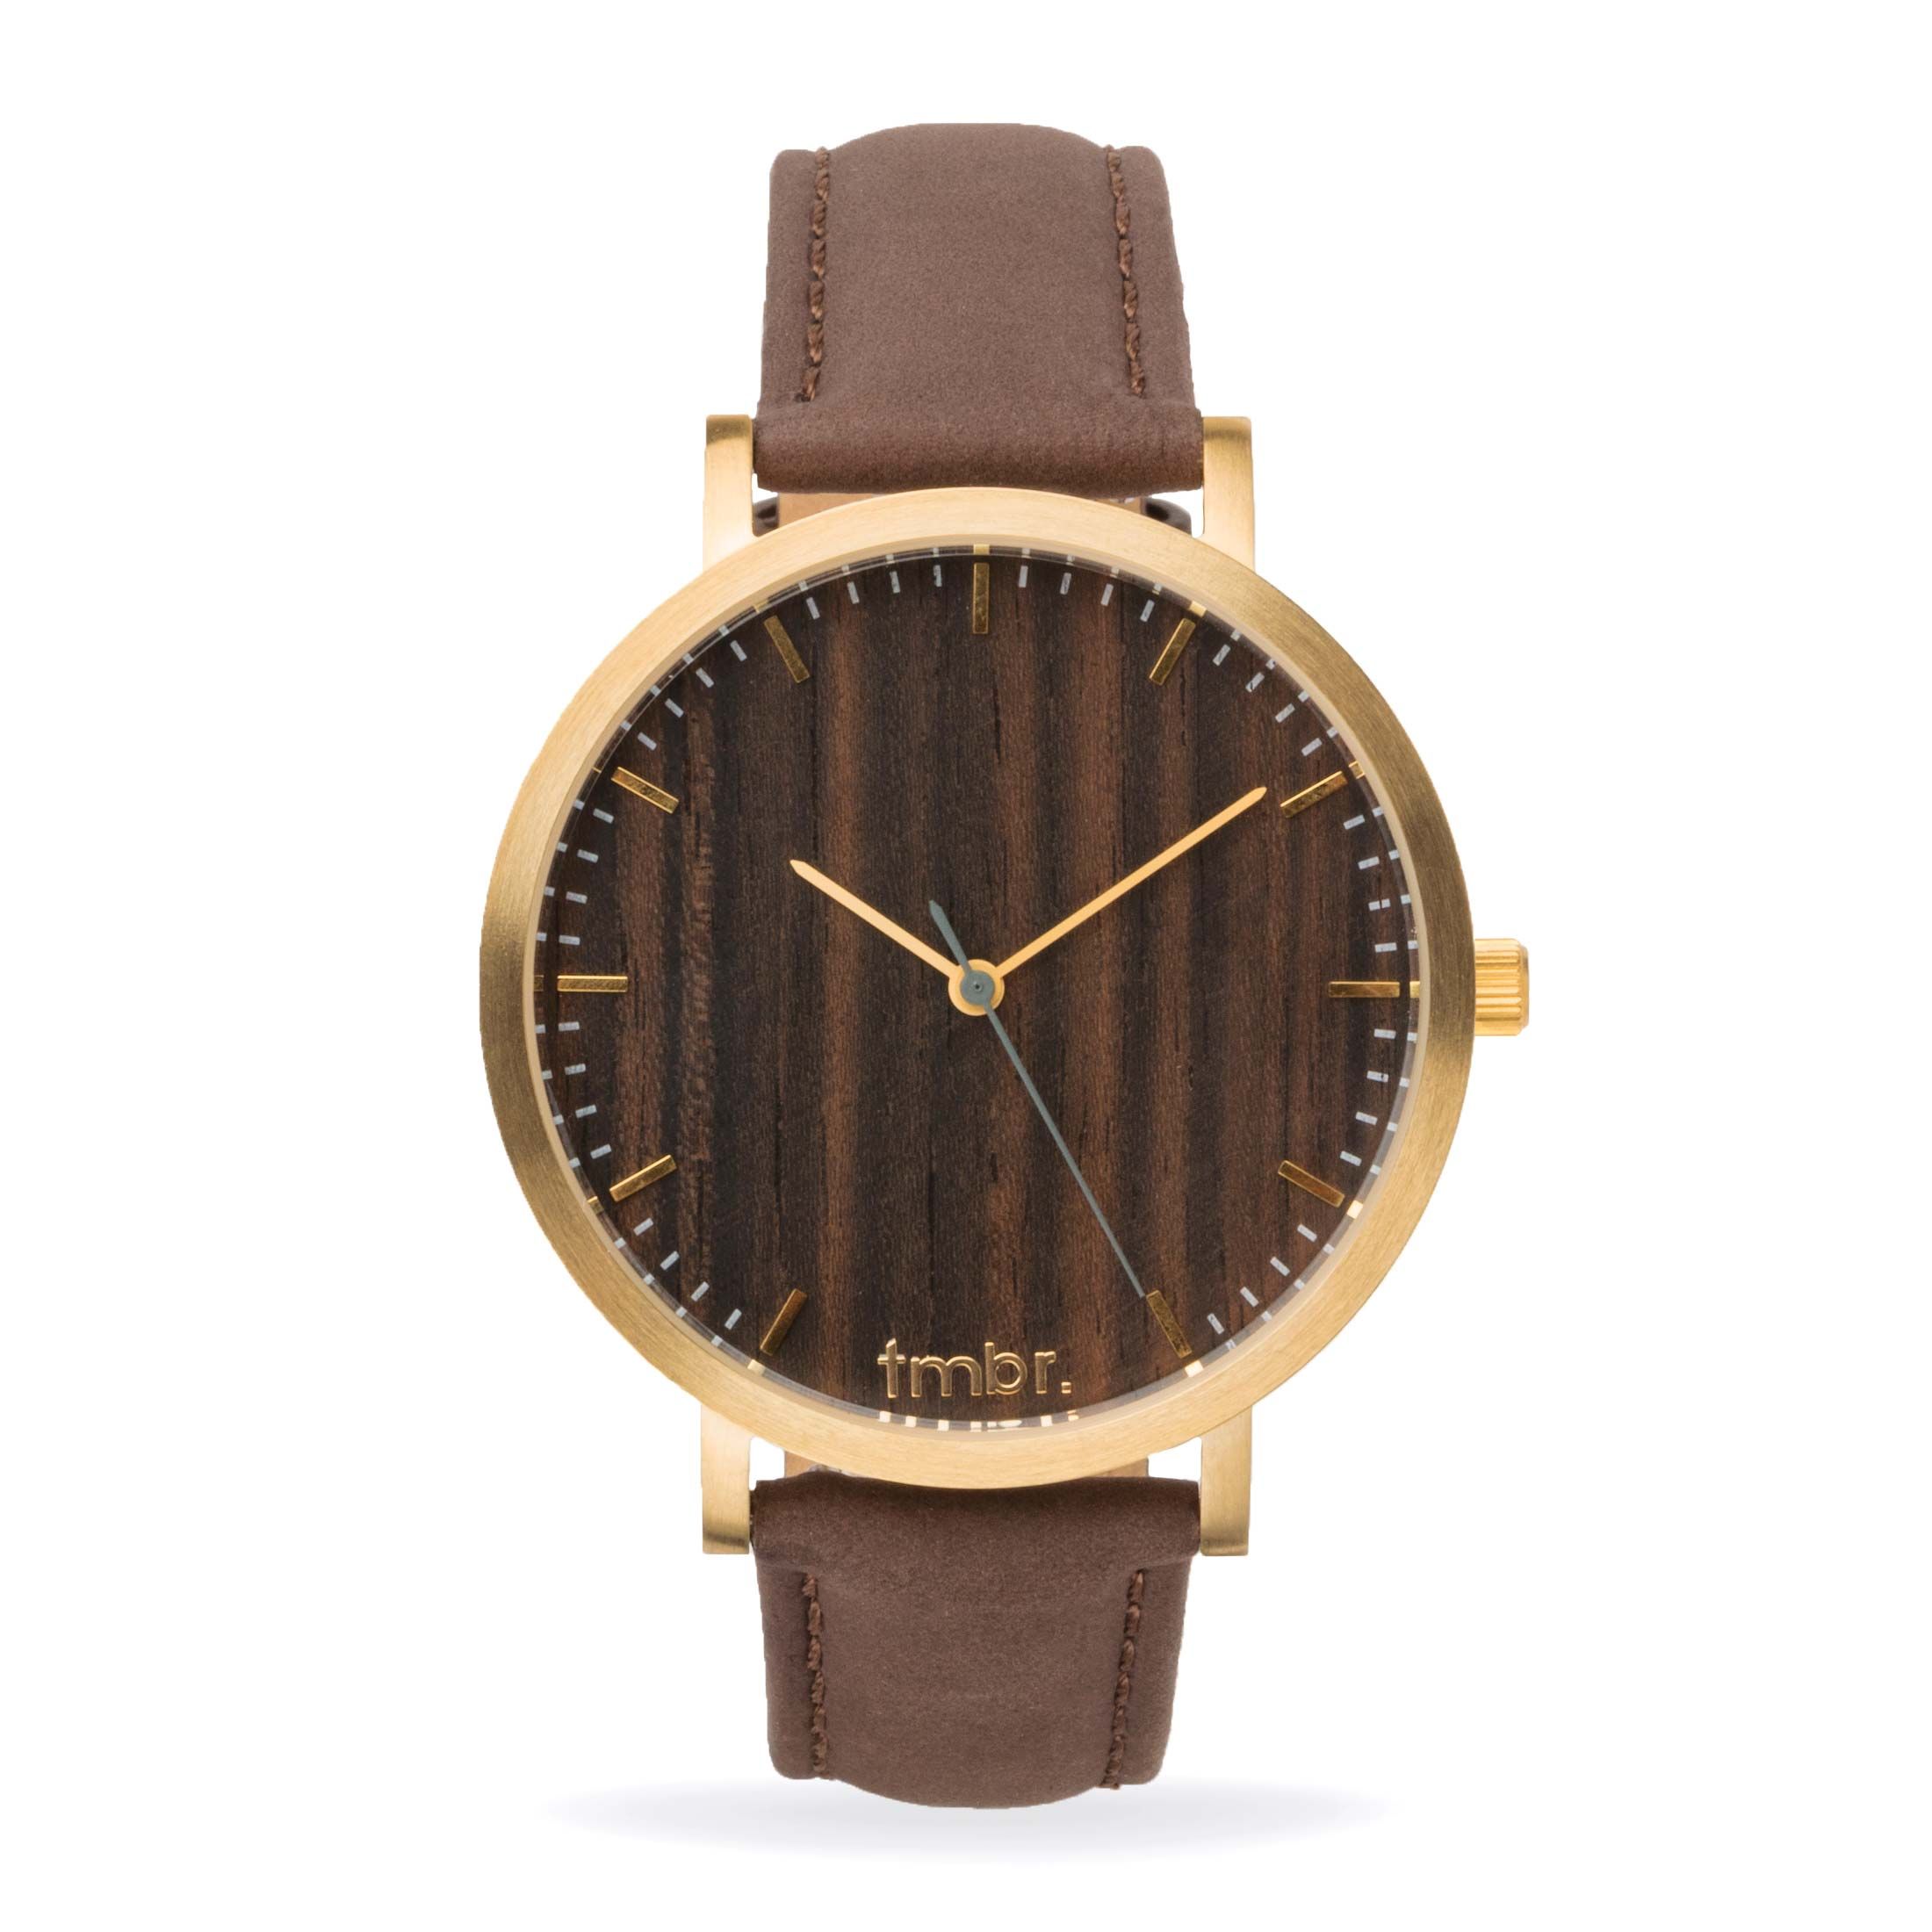 wood gold by rose watches watch face wooden women real s helm custom tmbr